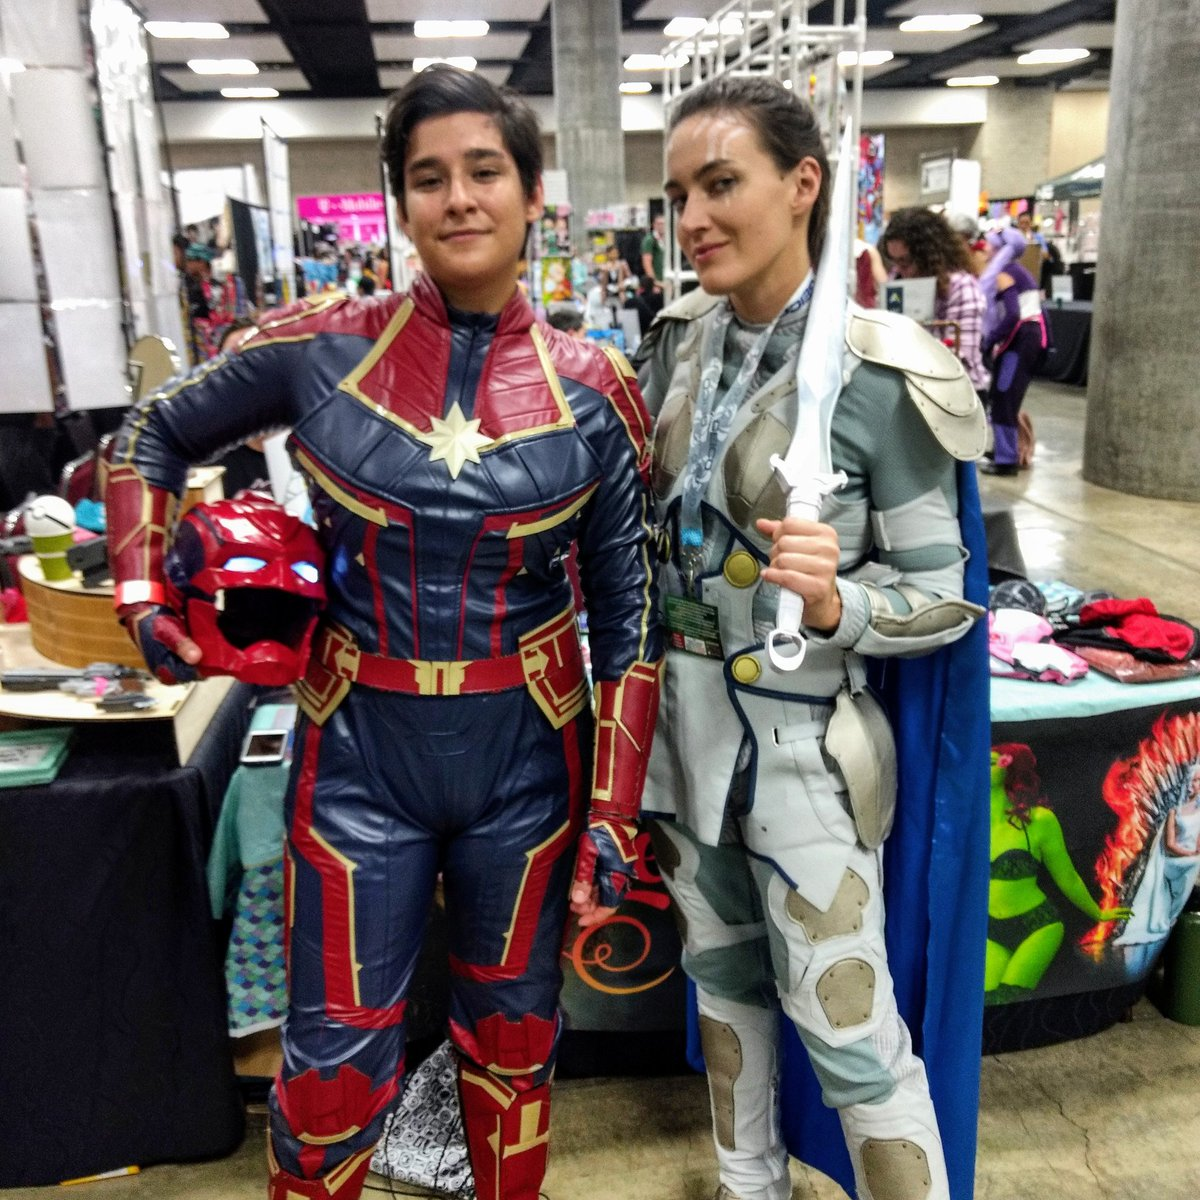 A great Captain Marvel and equally great @leahroseftw as Valkyrie #captainmarvel #valkyrie #mcu #cosplay #comicconhonolulu2019 https://t.co/St7rJxw4AW